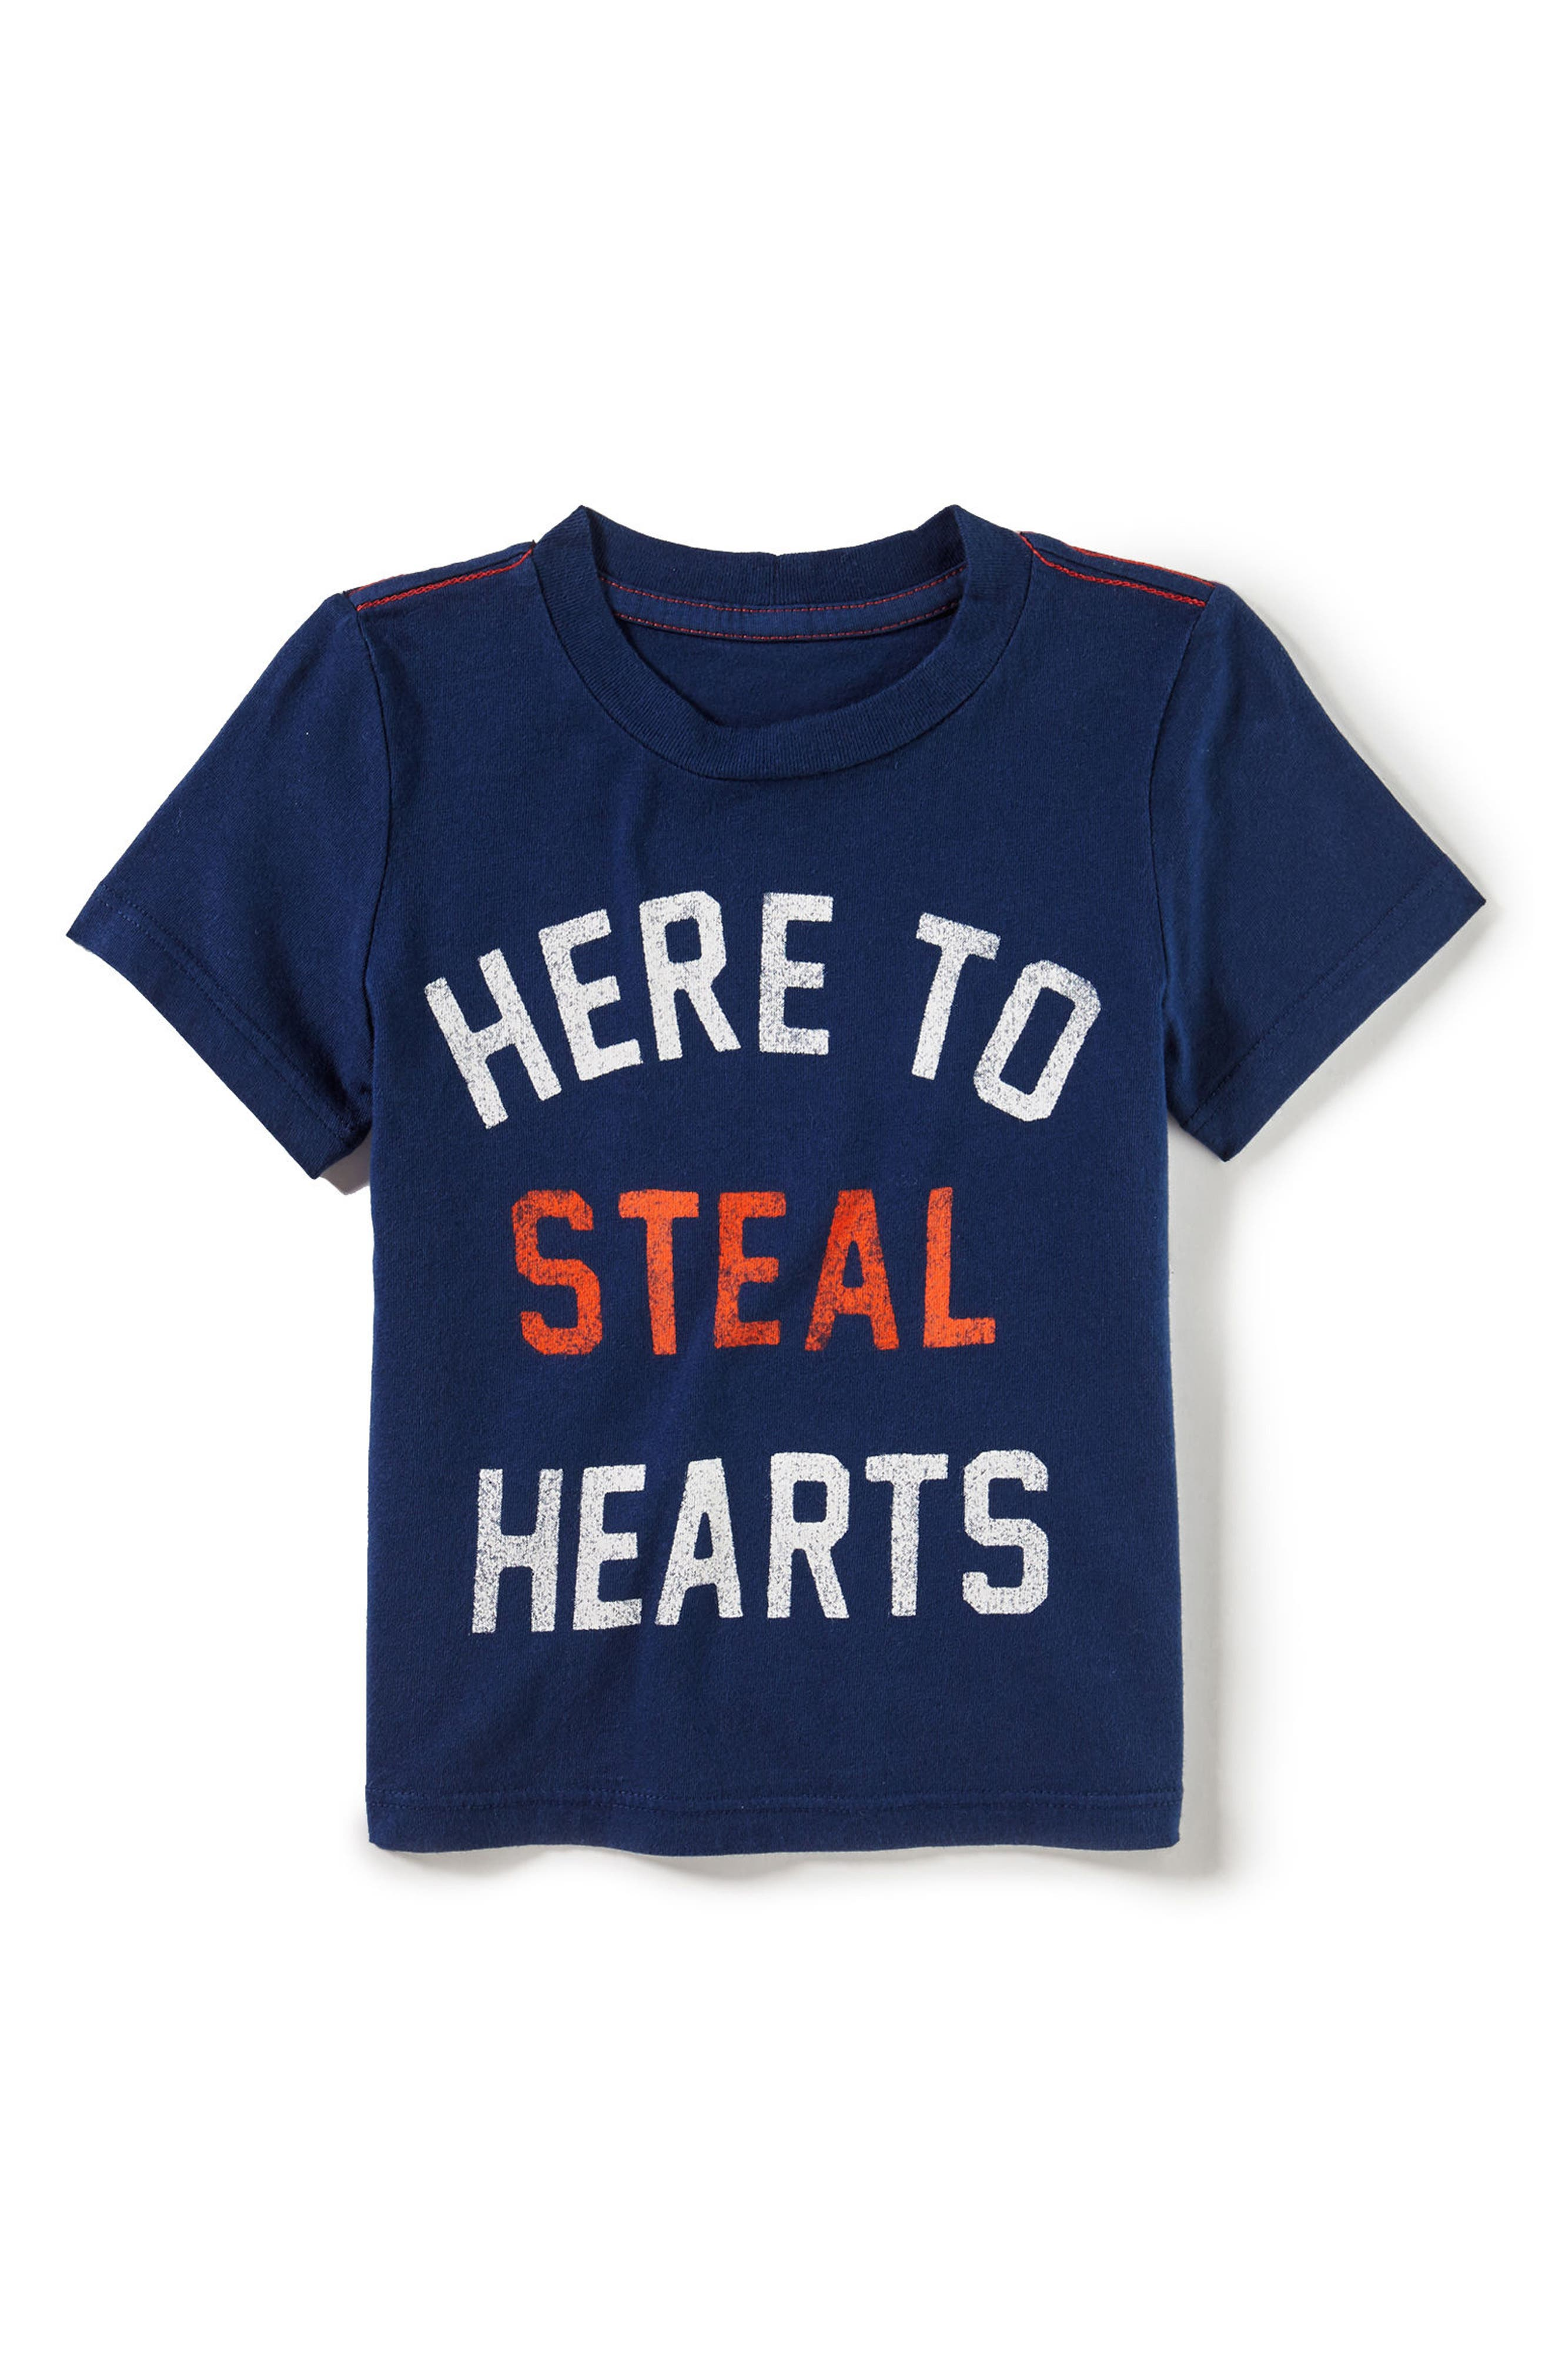 Steal Hearts Graphic T-Shirt,                         Main,                         color, 410